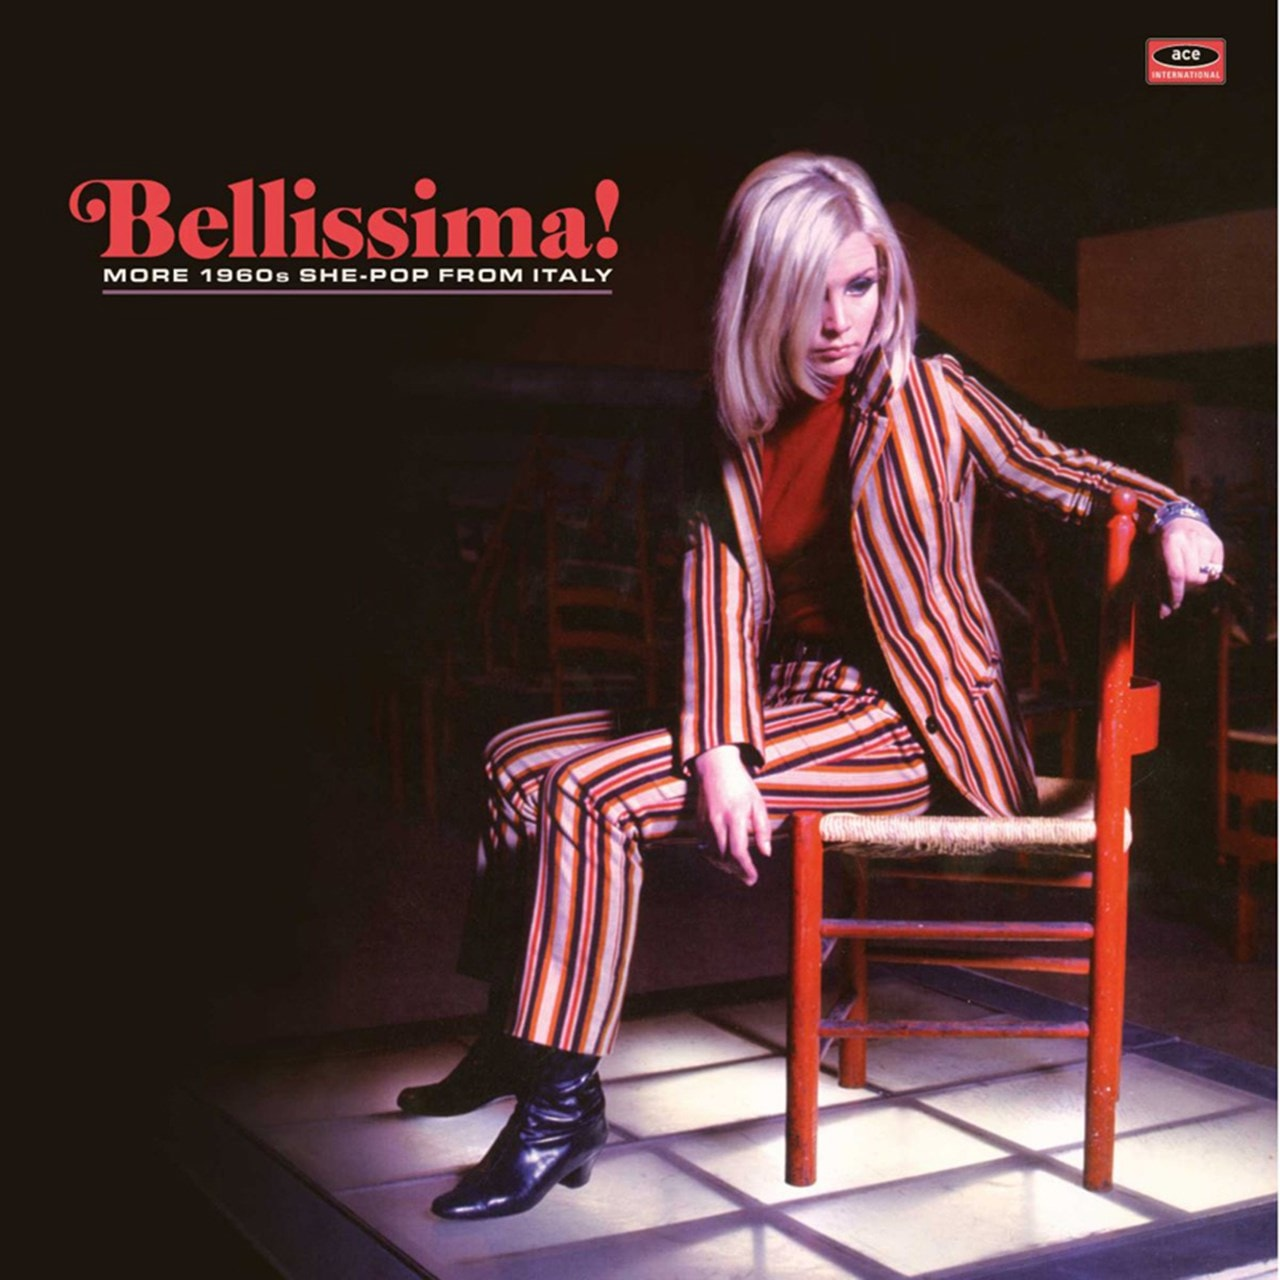 Bellissima!: More 1960's She-pop from Italy - 1